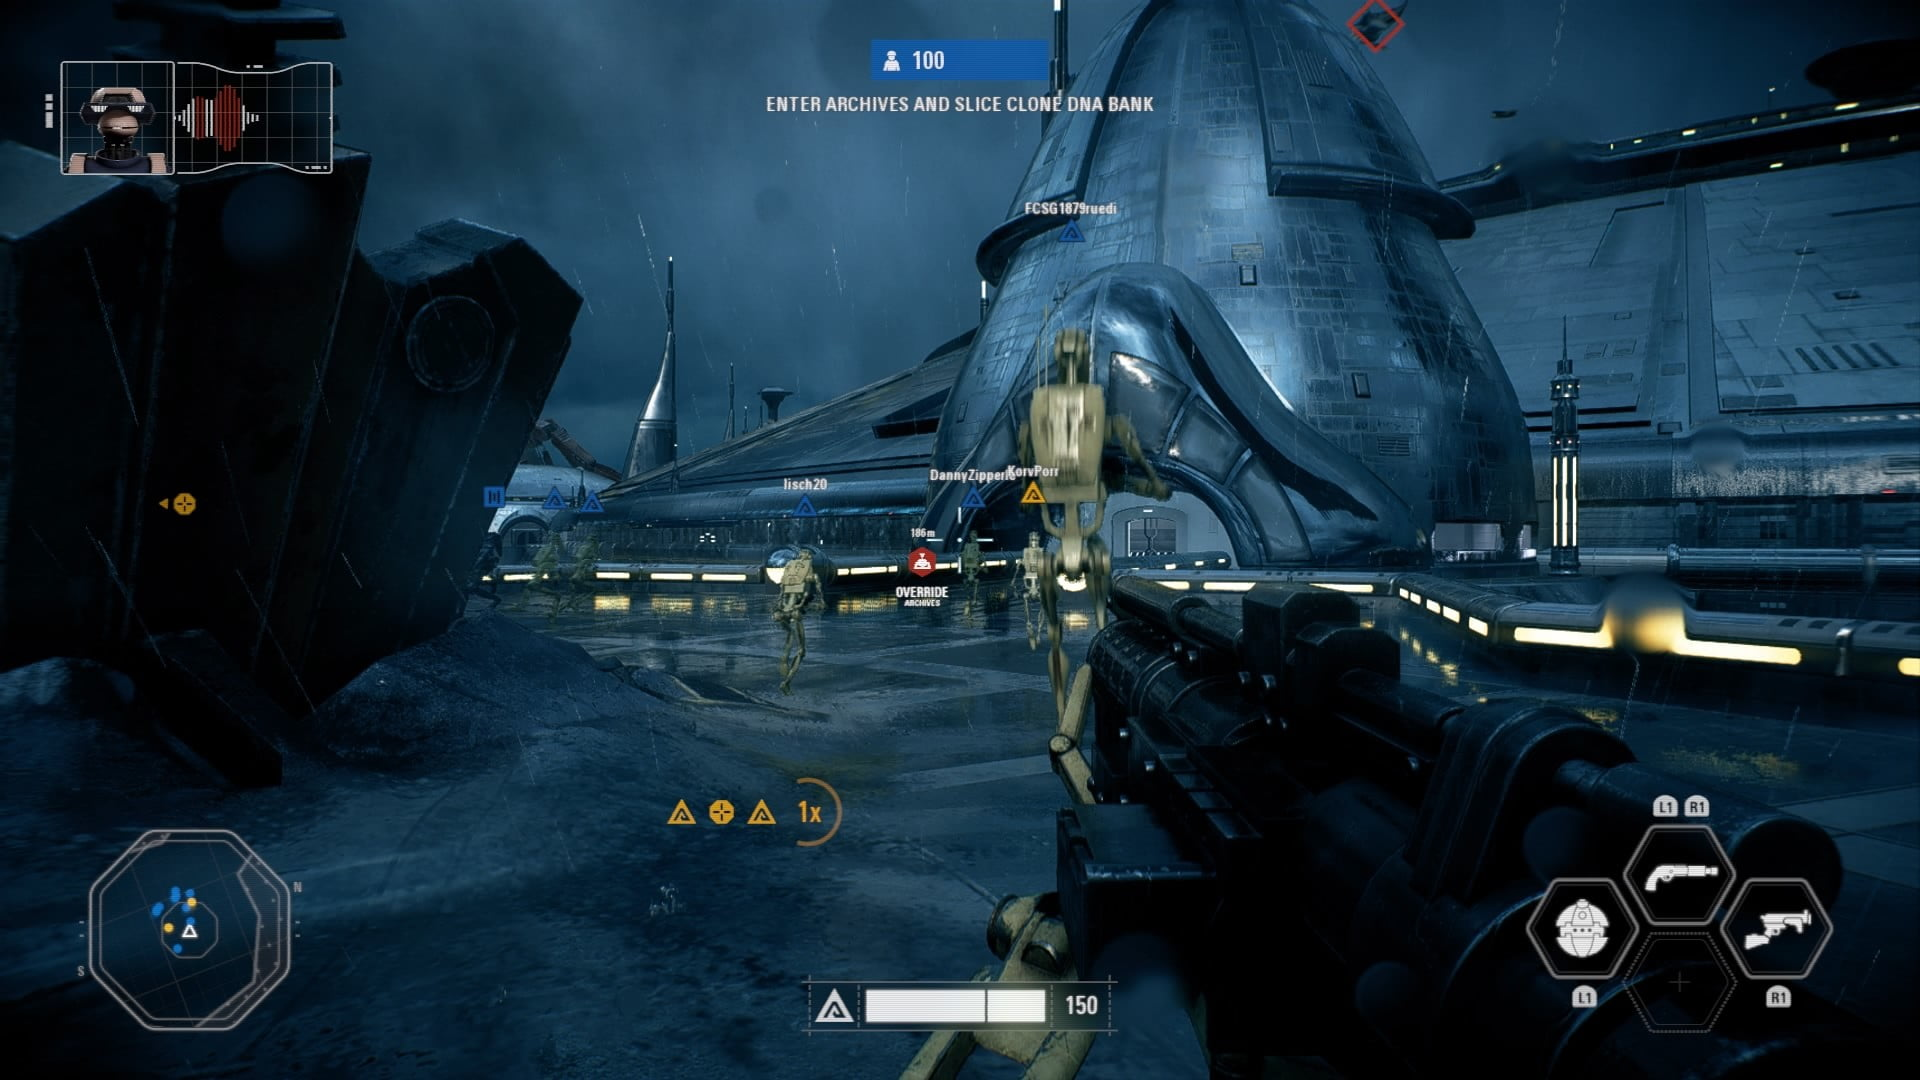 Star wars battlefront 2 game review resorts casino east chicago indiana